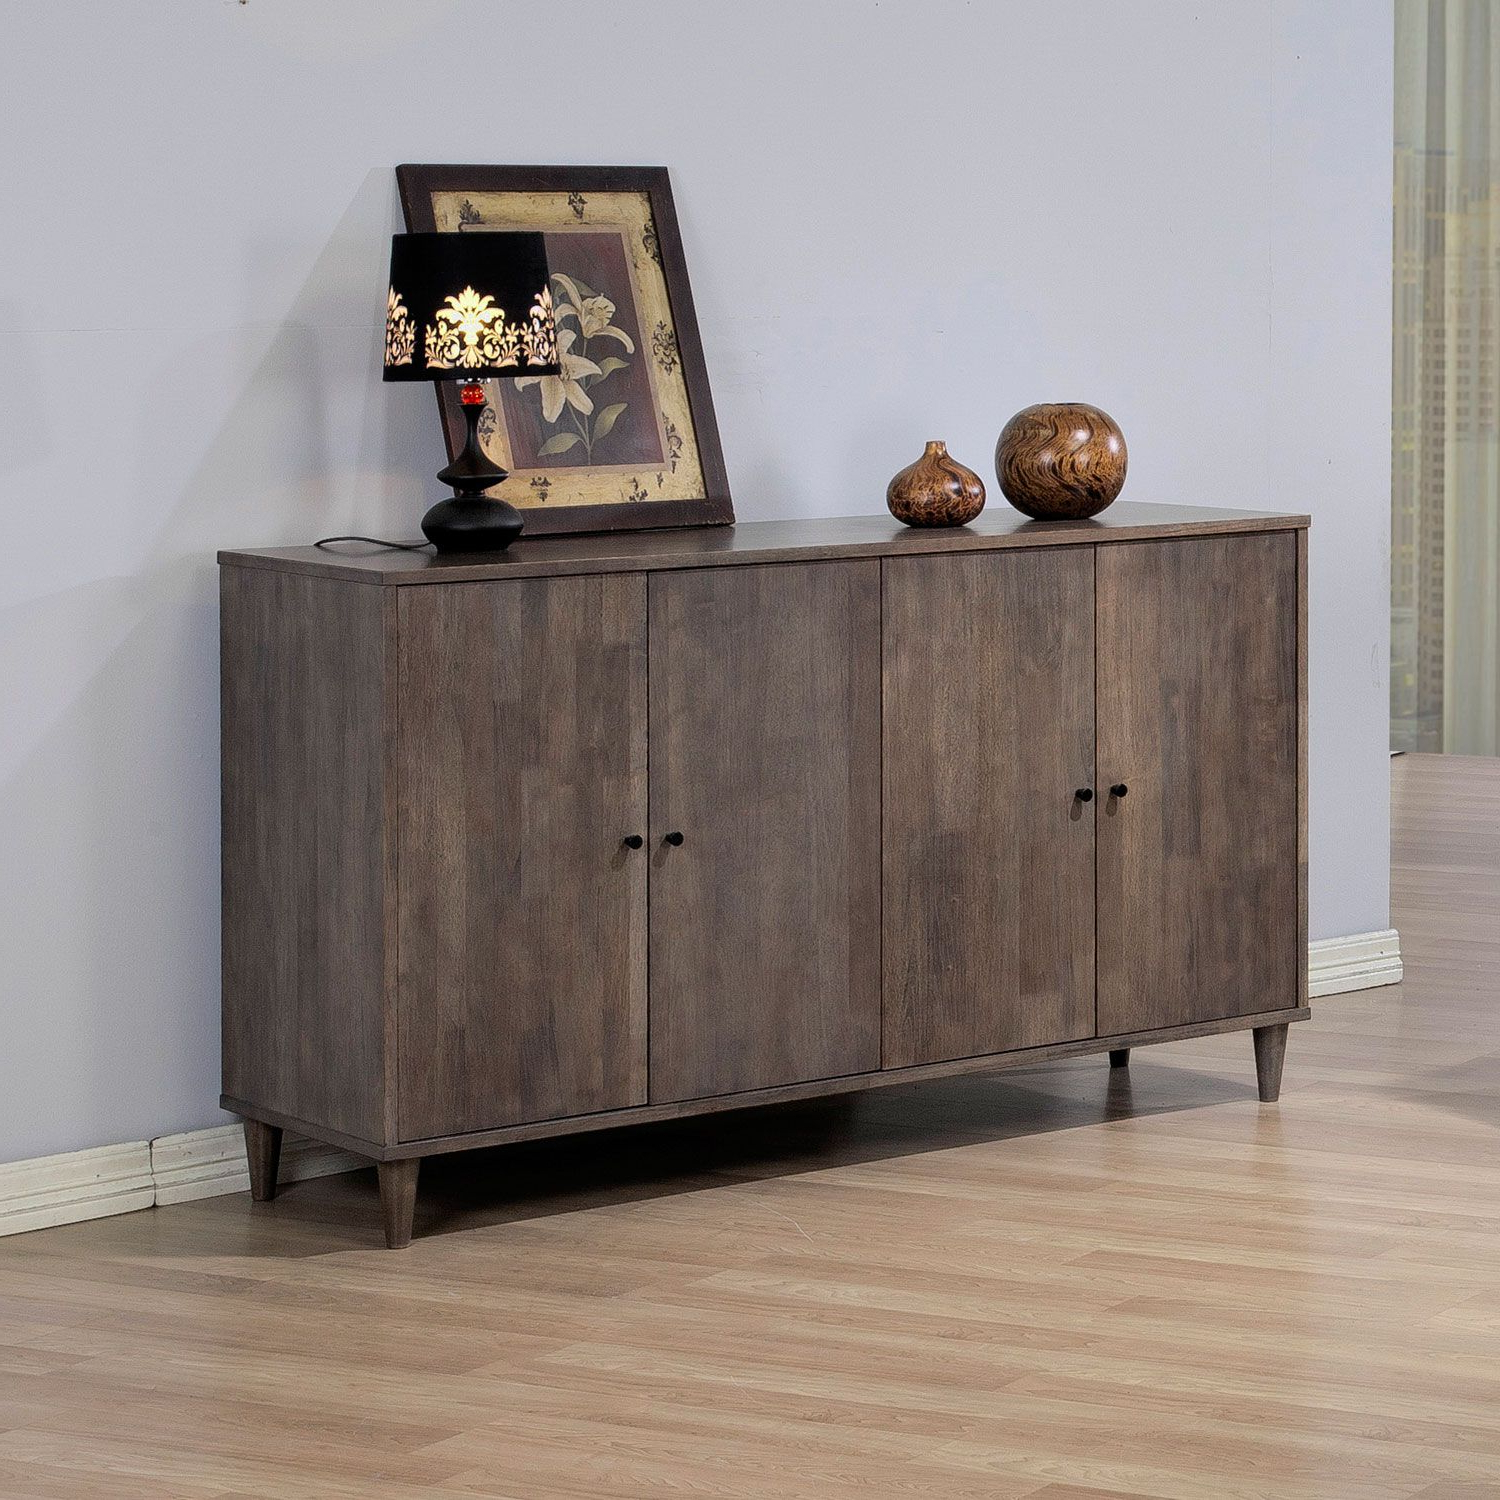 Add A Stylish Look To Any Space With This Light Charcoal Throughout Strick & Bolton Dallas Walnut Buffets (View 3 of 20)